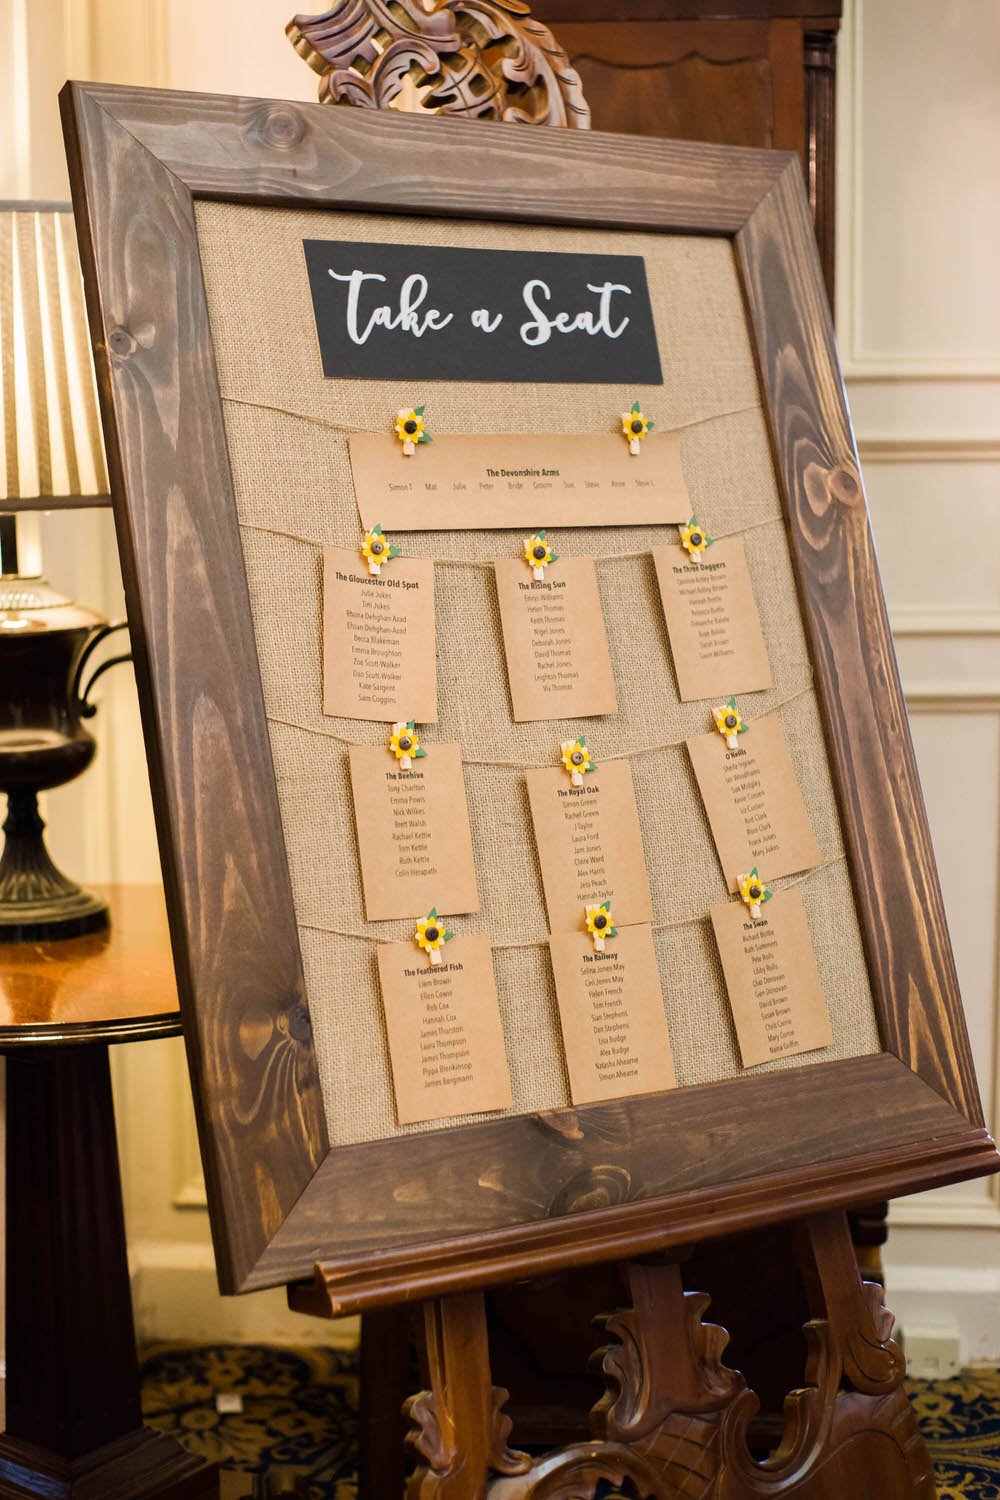 Table-layout-idea-at-a-wedding-in-Dumbleton-Hall-Hotel.jpg